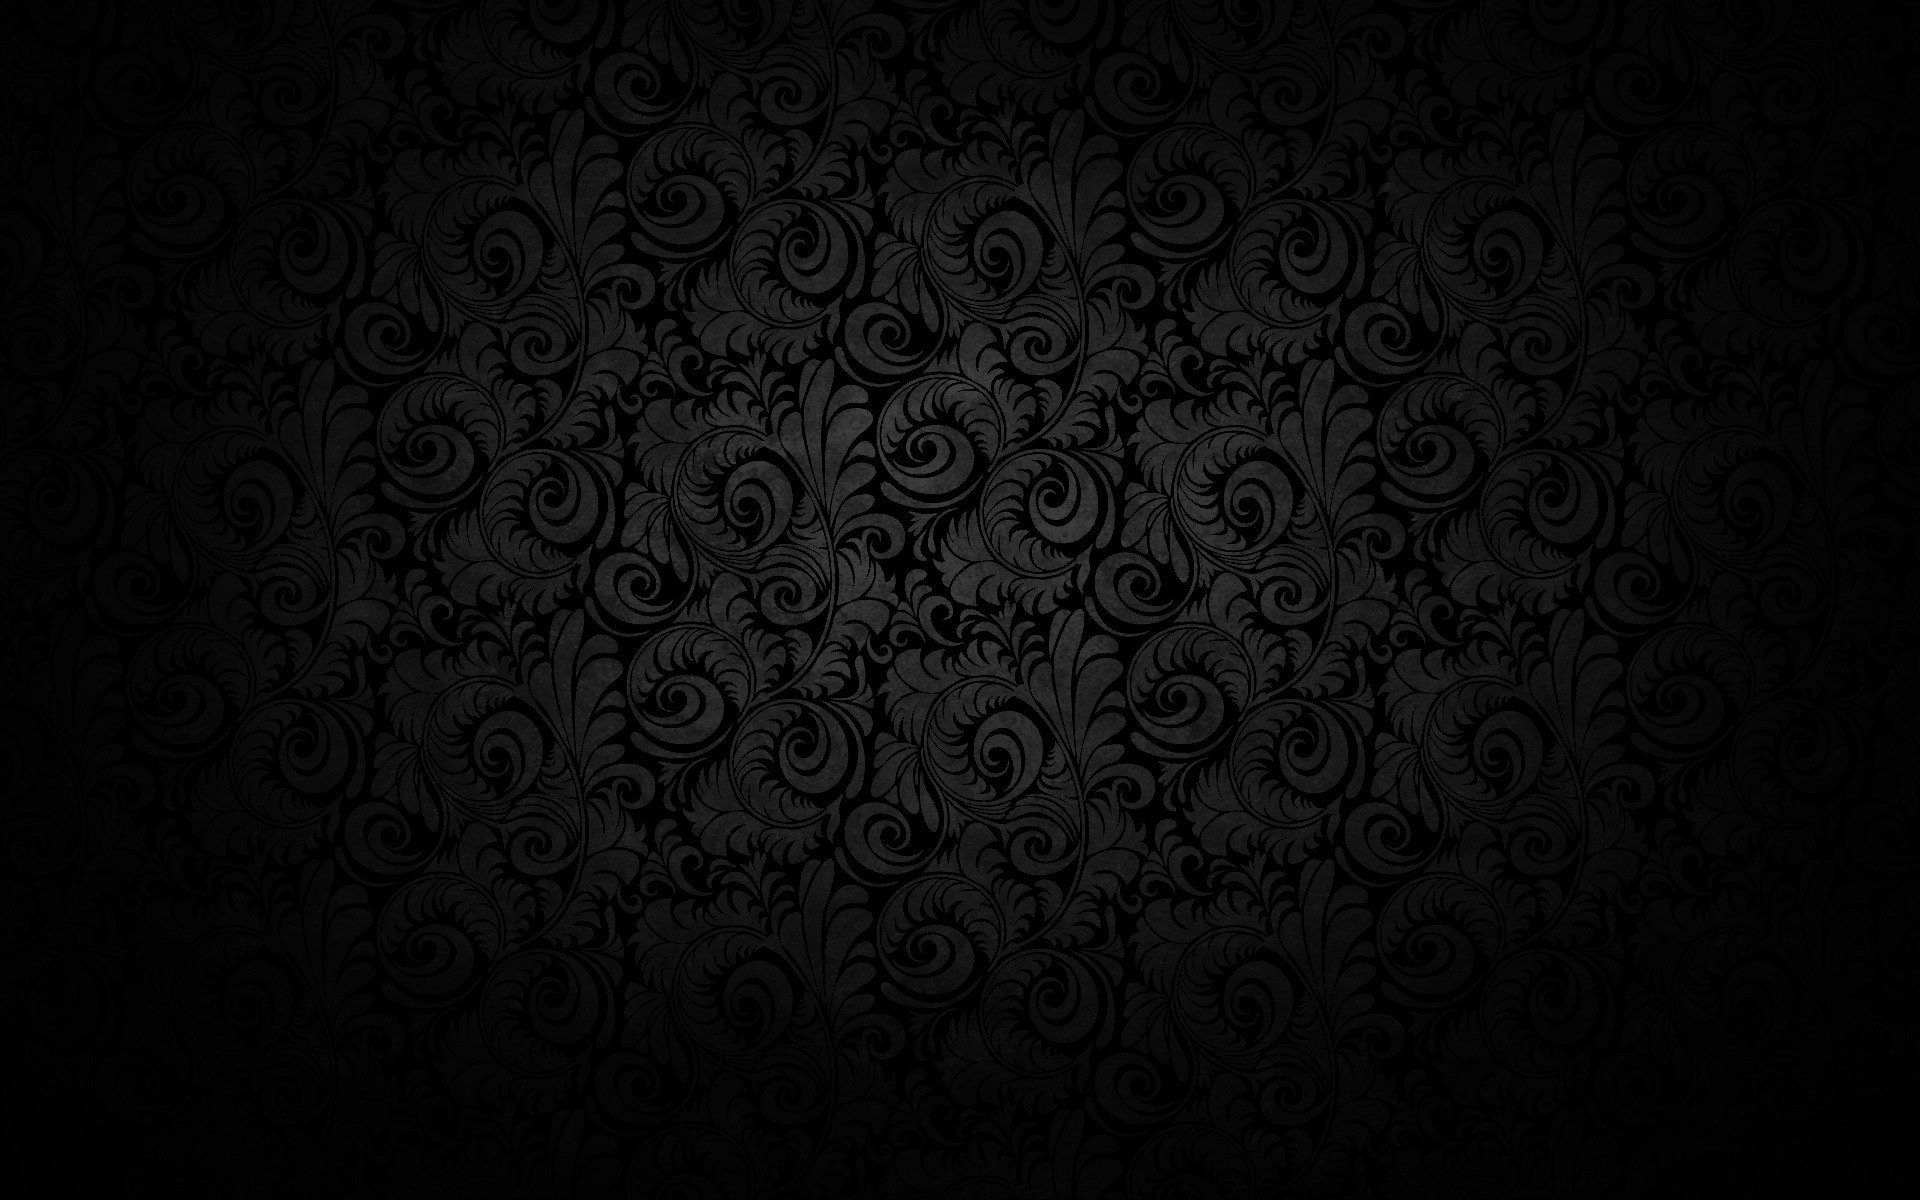 80 Dark Desktop Backgrounds Download Free Beautiful High